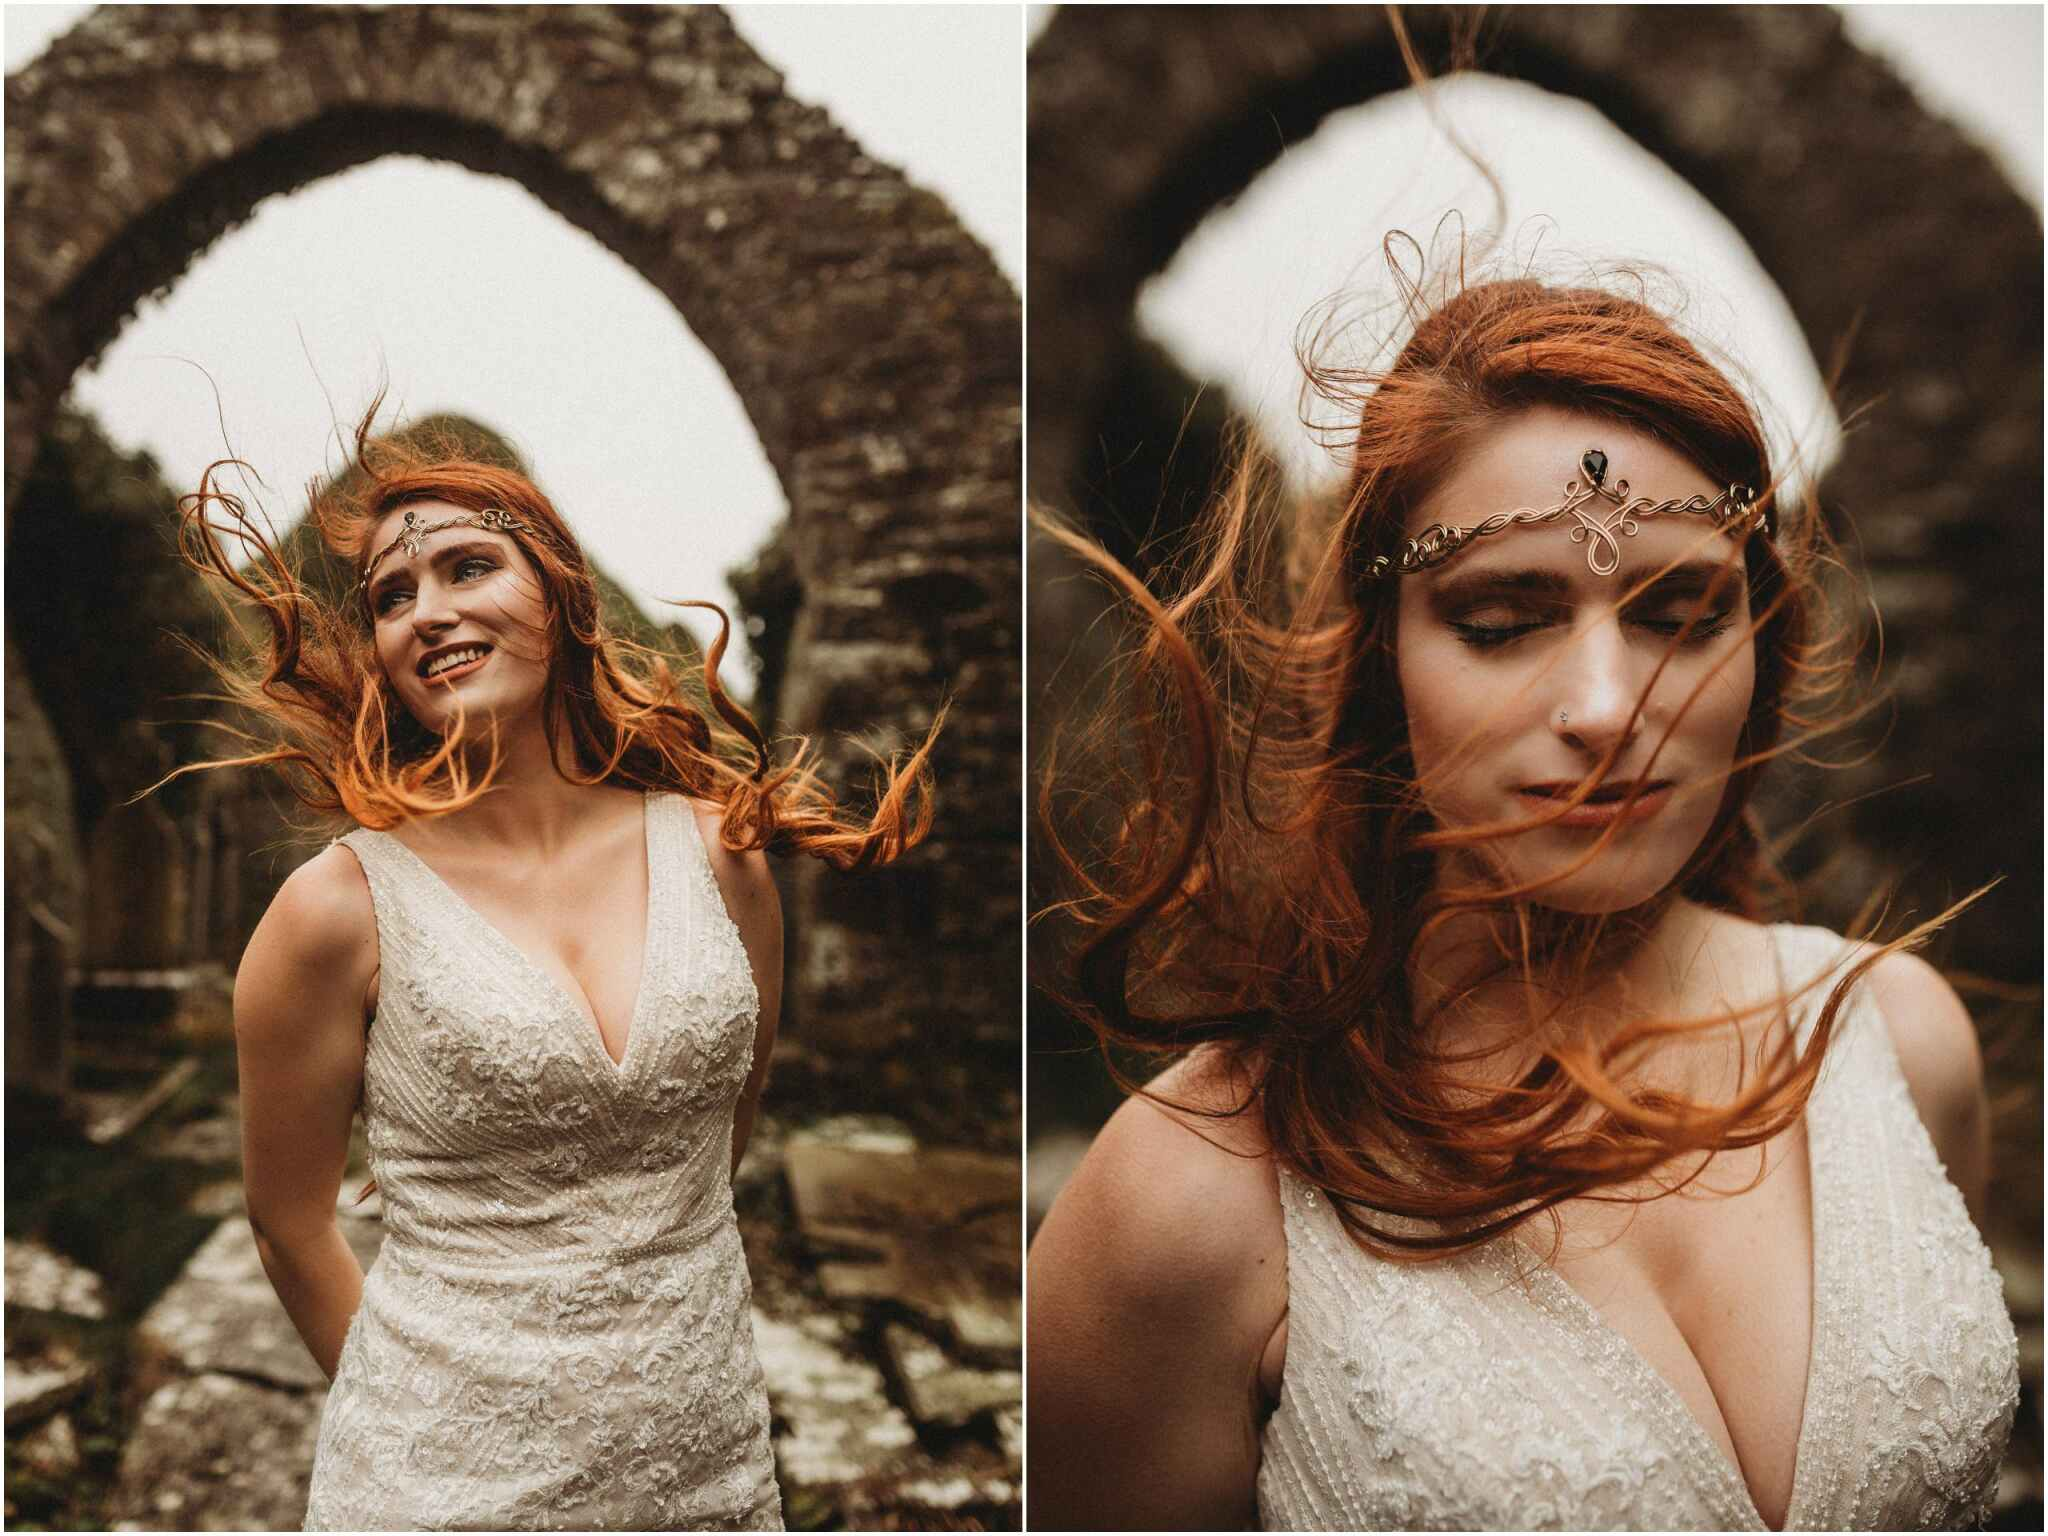 Brides hair dancing in the wind, under arch way Liscannor - Loughloon near the cliff of moher. This elopement was timeless and I will cherish having documented such a beautiful connection. These intimate elopement photos embrace the weather of Ireland and show the spirit of elopements.